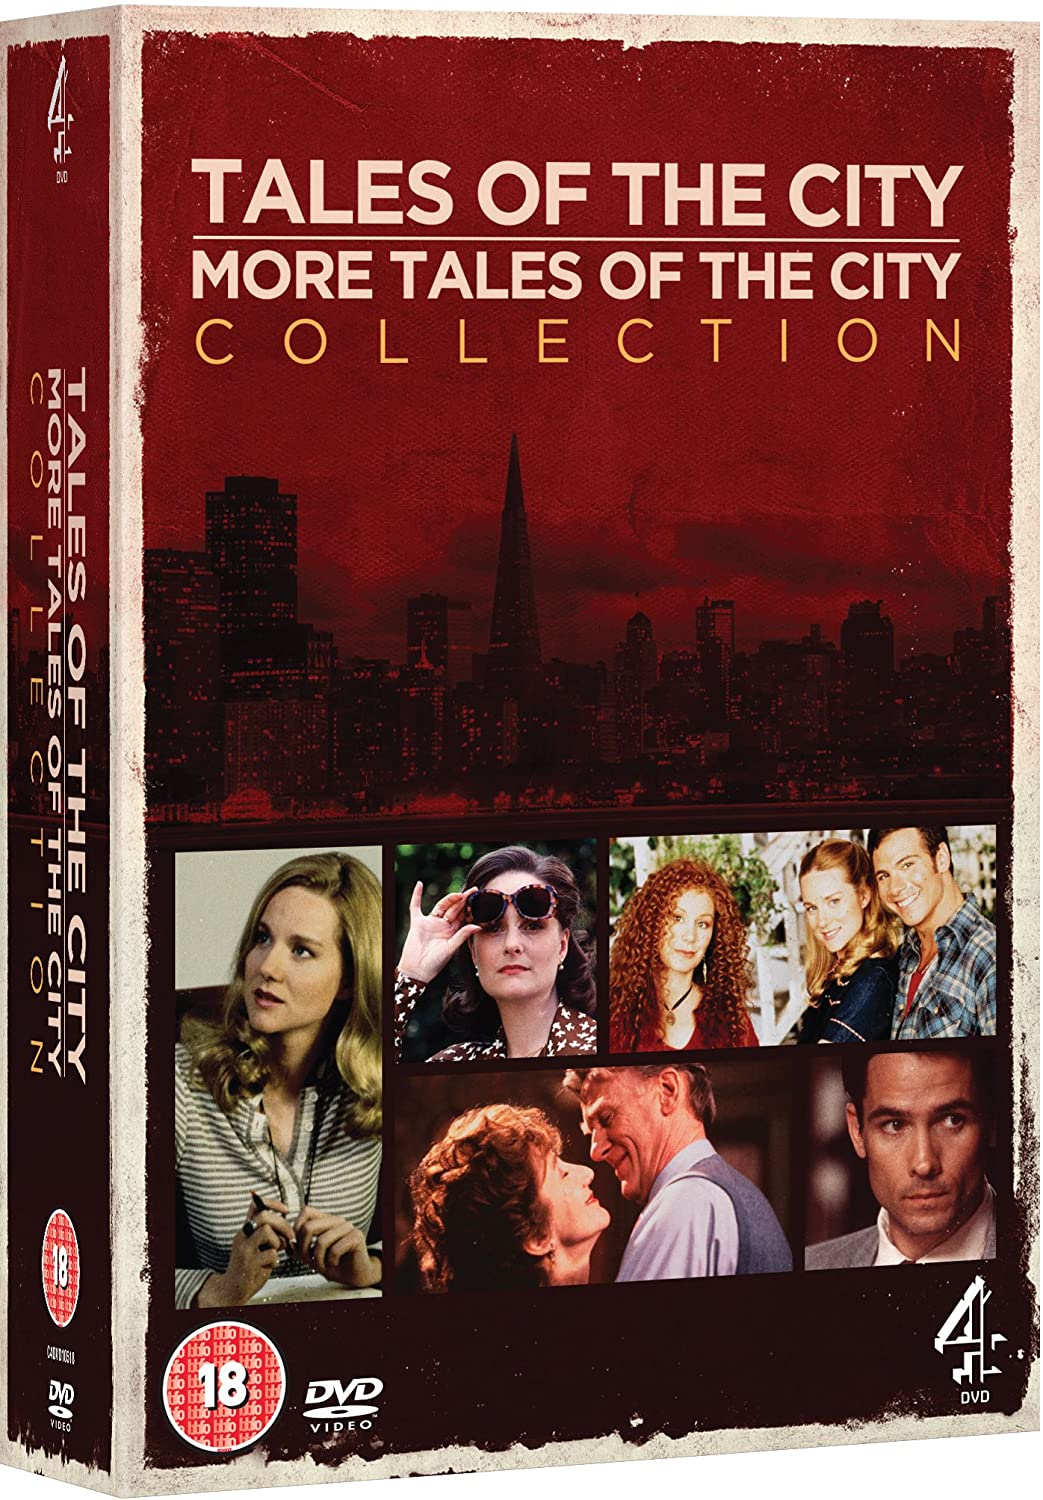 Tales of the City/More Tales of the City